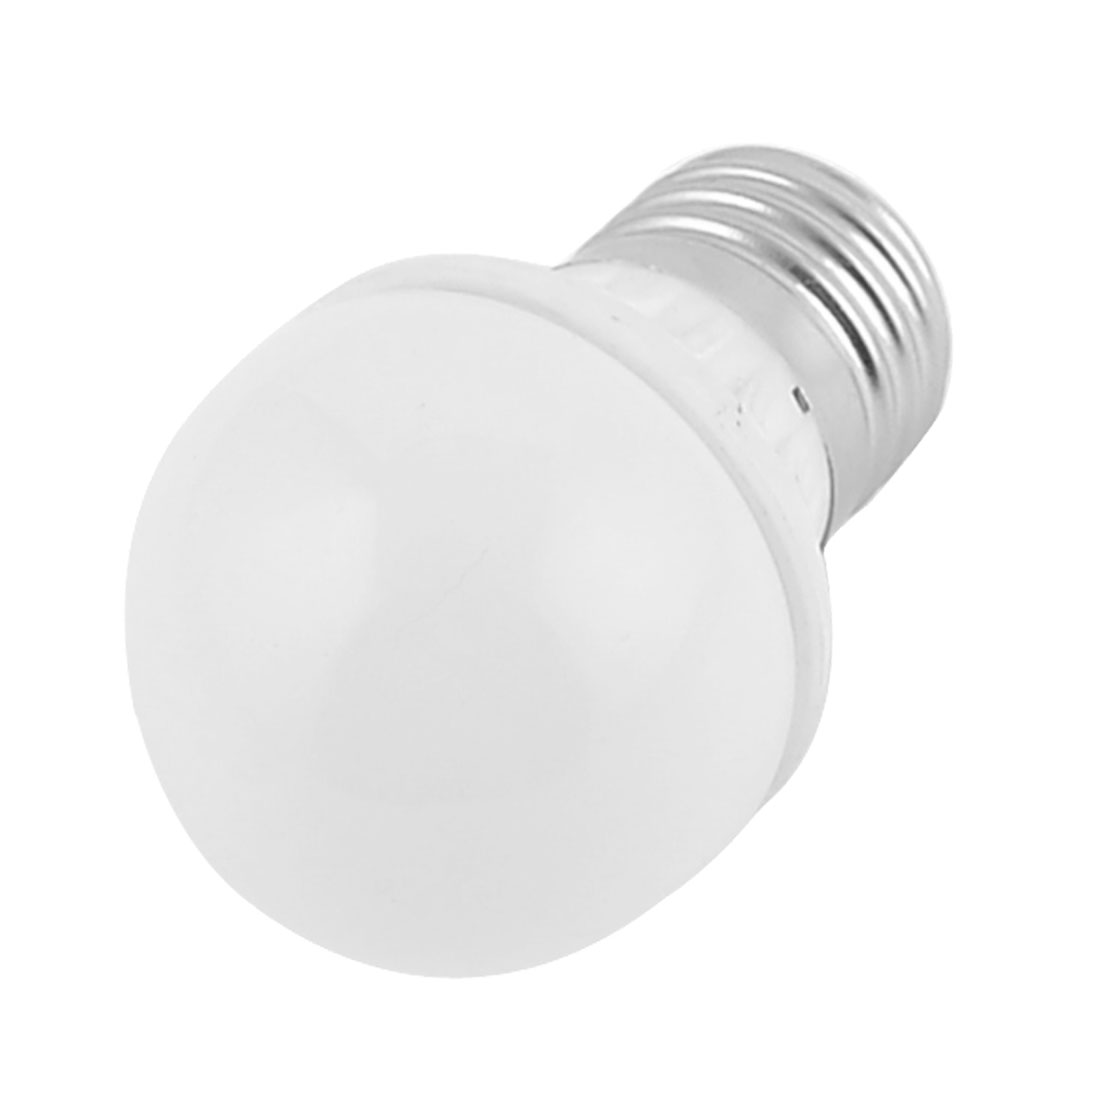 "Home E27 4W Energy Saving LED Ball Bulb White Light Lamp 1.8"" Dia"